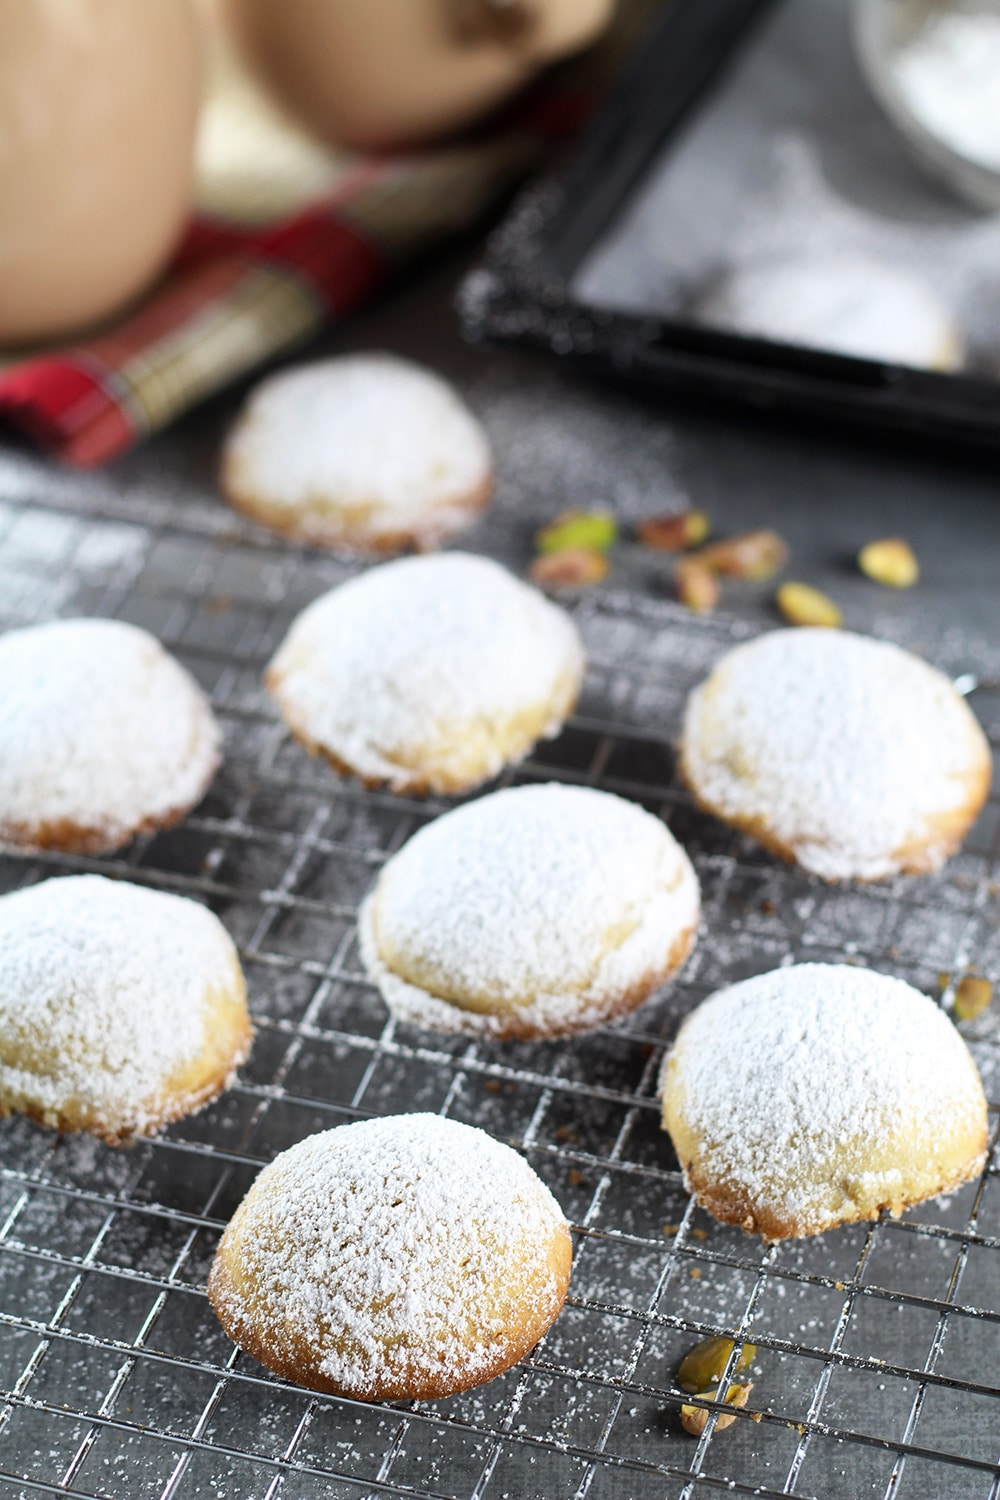 These Greek Butter Cookies (Kourabiedes) are usually made on Christmas or other holidays. They are tender, buttery, and stuffed with pistachios!   cookingtheglobe.com